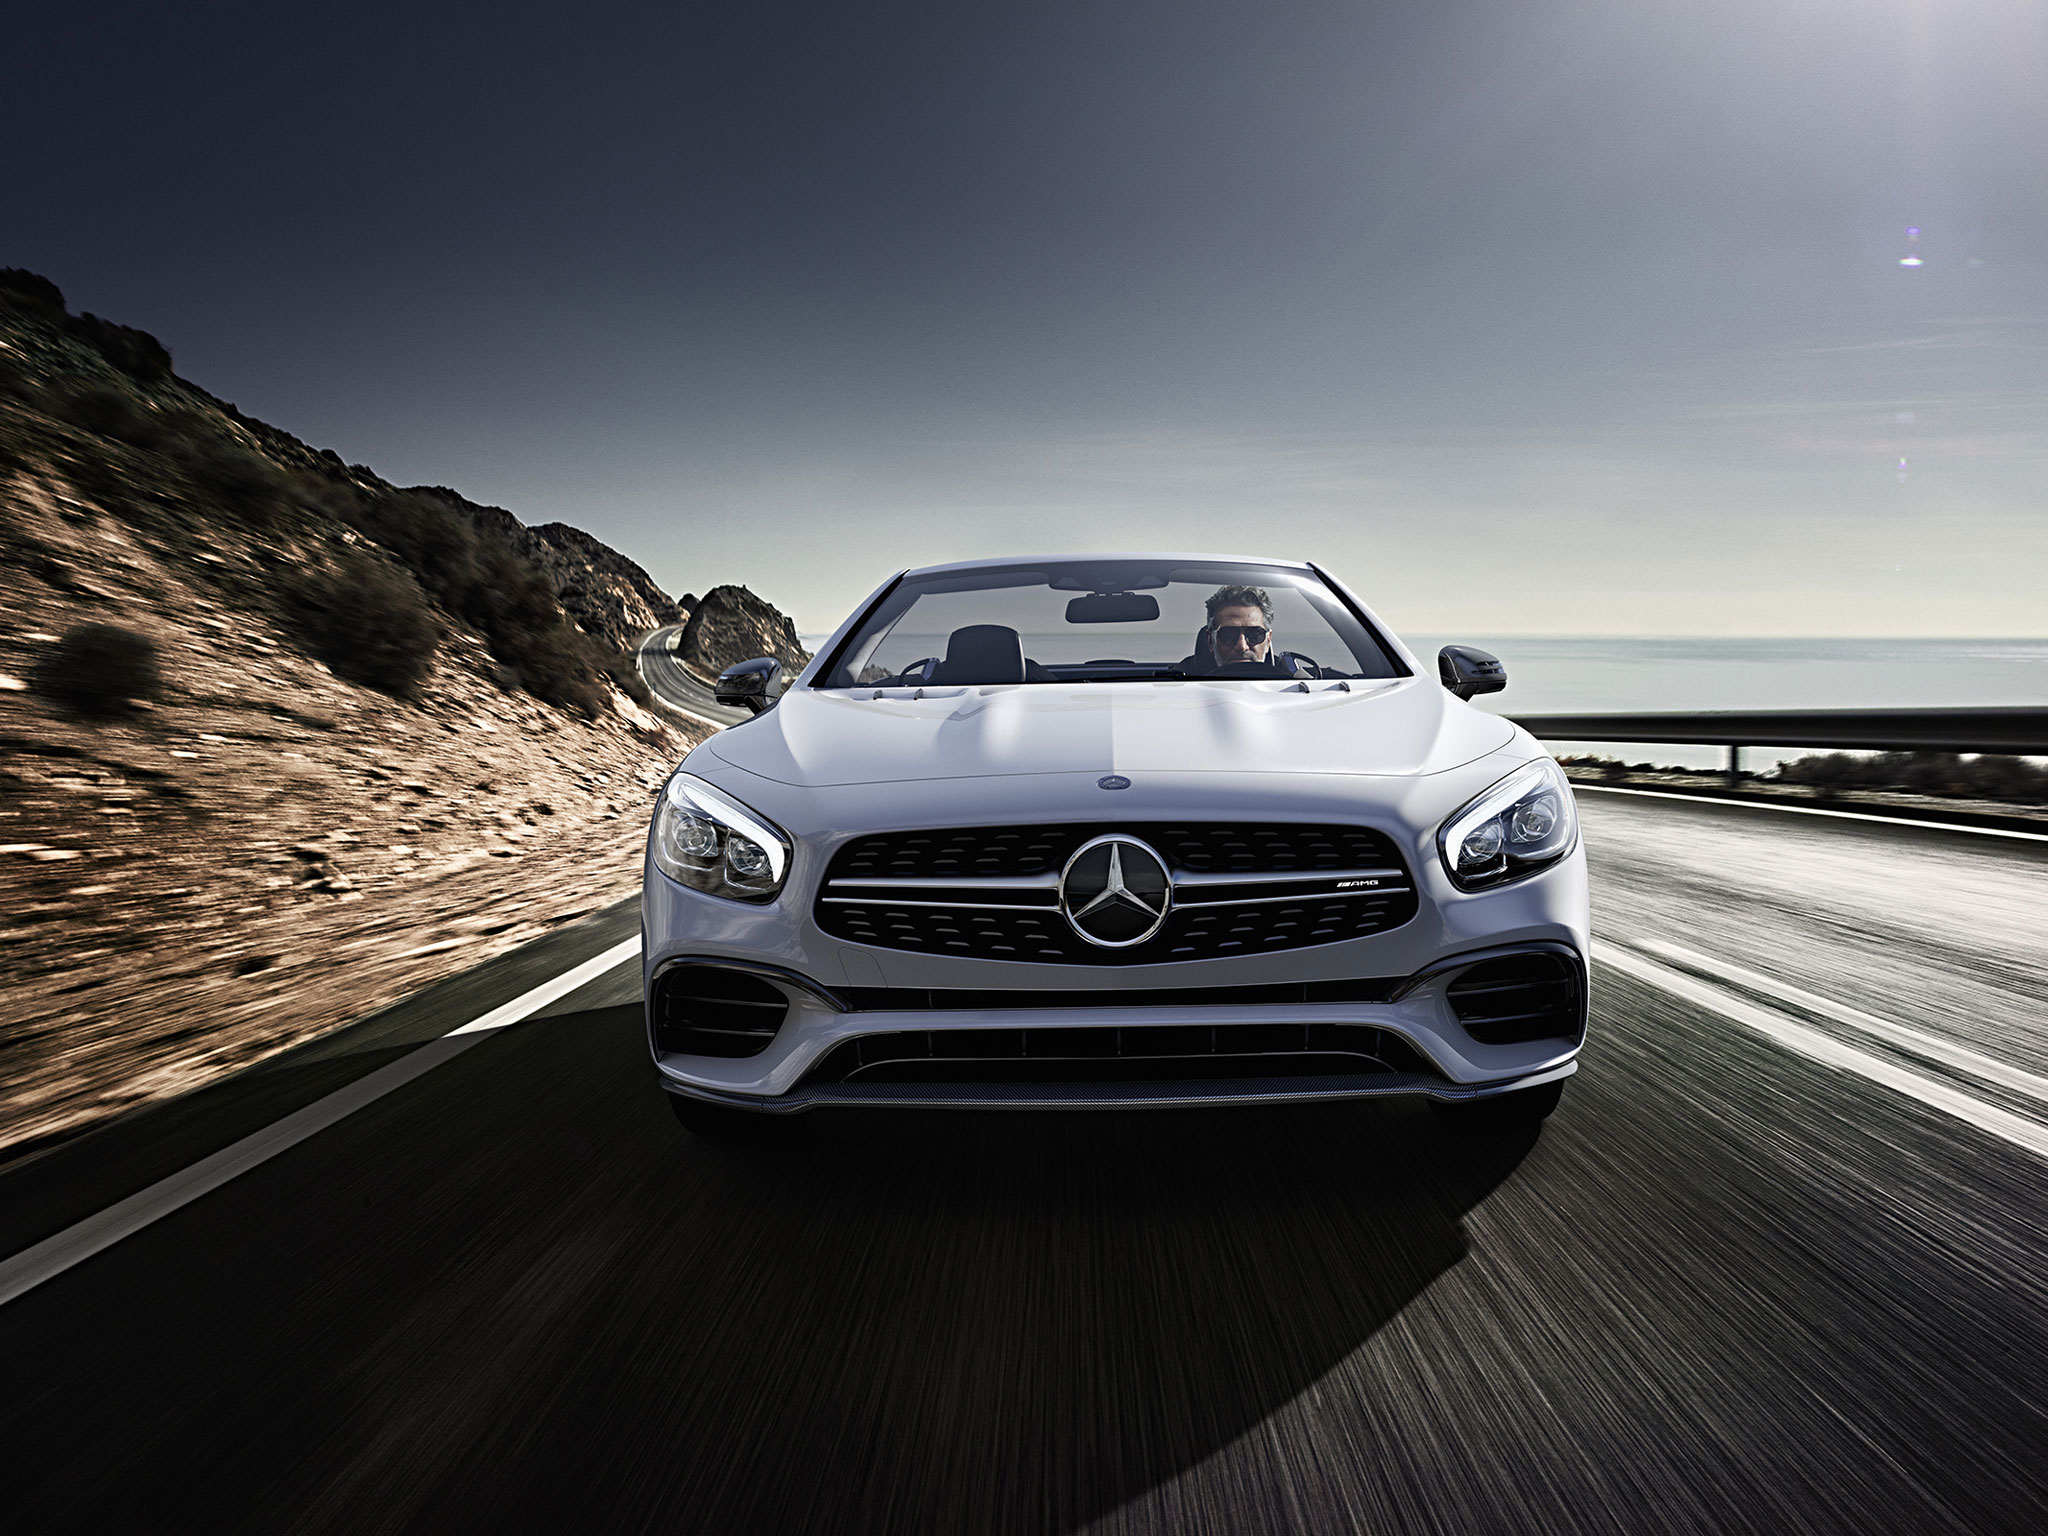 Amg Sl63 In Iridium Silver With Standard Active Led Headlamps